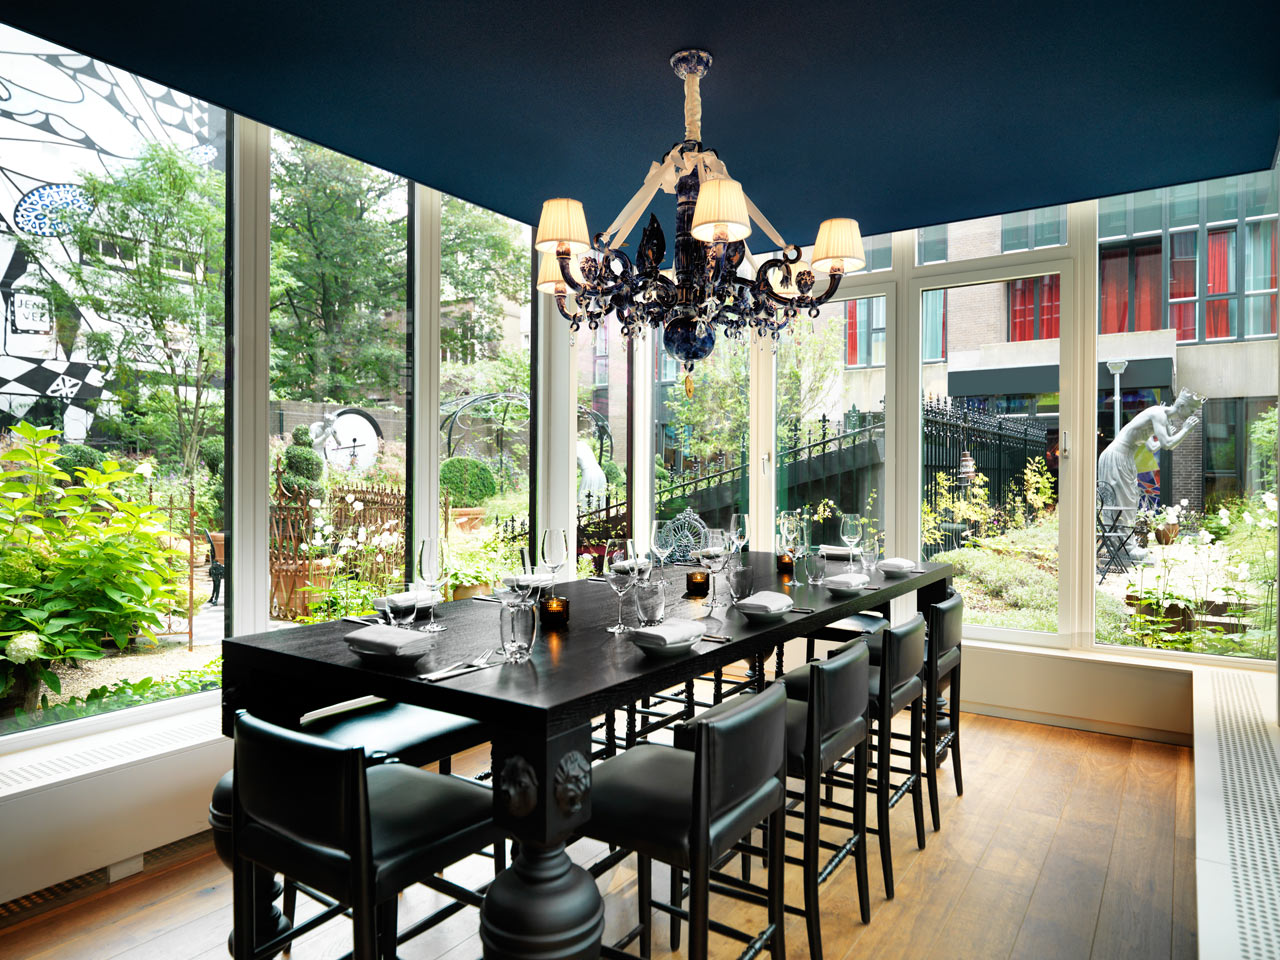 Destin-Andaz-Amsterdam-Wanders-7-private-dining